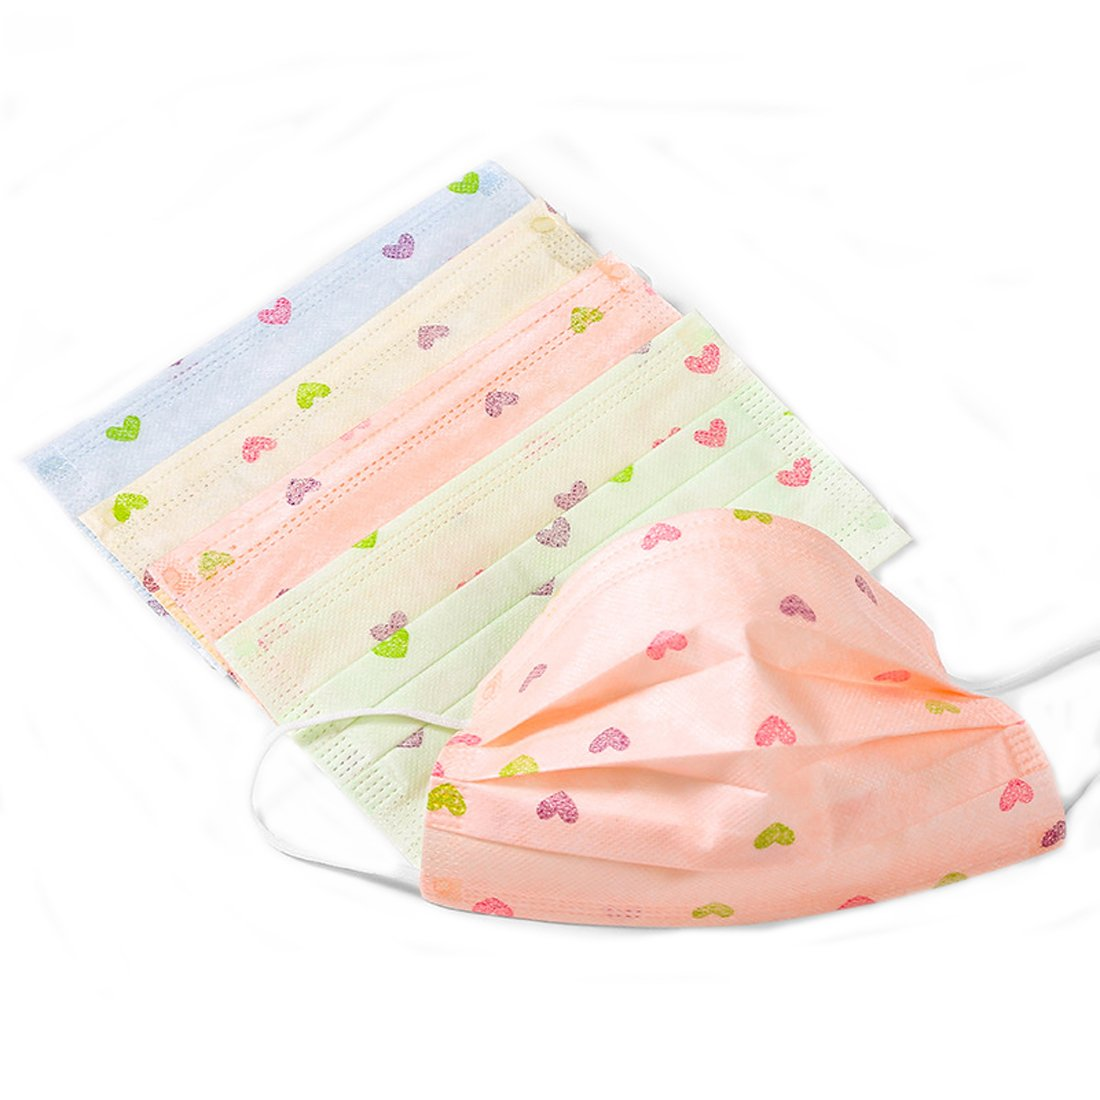 Flyusa 3 Layer Cartoon Printed Non-woven Fabric Disposable Surgical Dust Filter Ear Loop Mouth Cover Face Mask for Women Lady Girls,30 Pcs,Heart